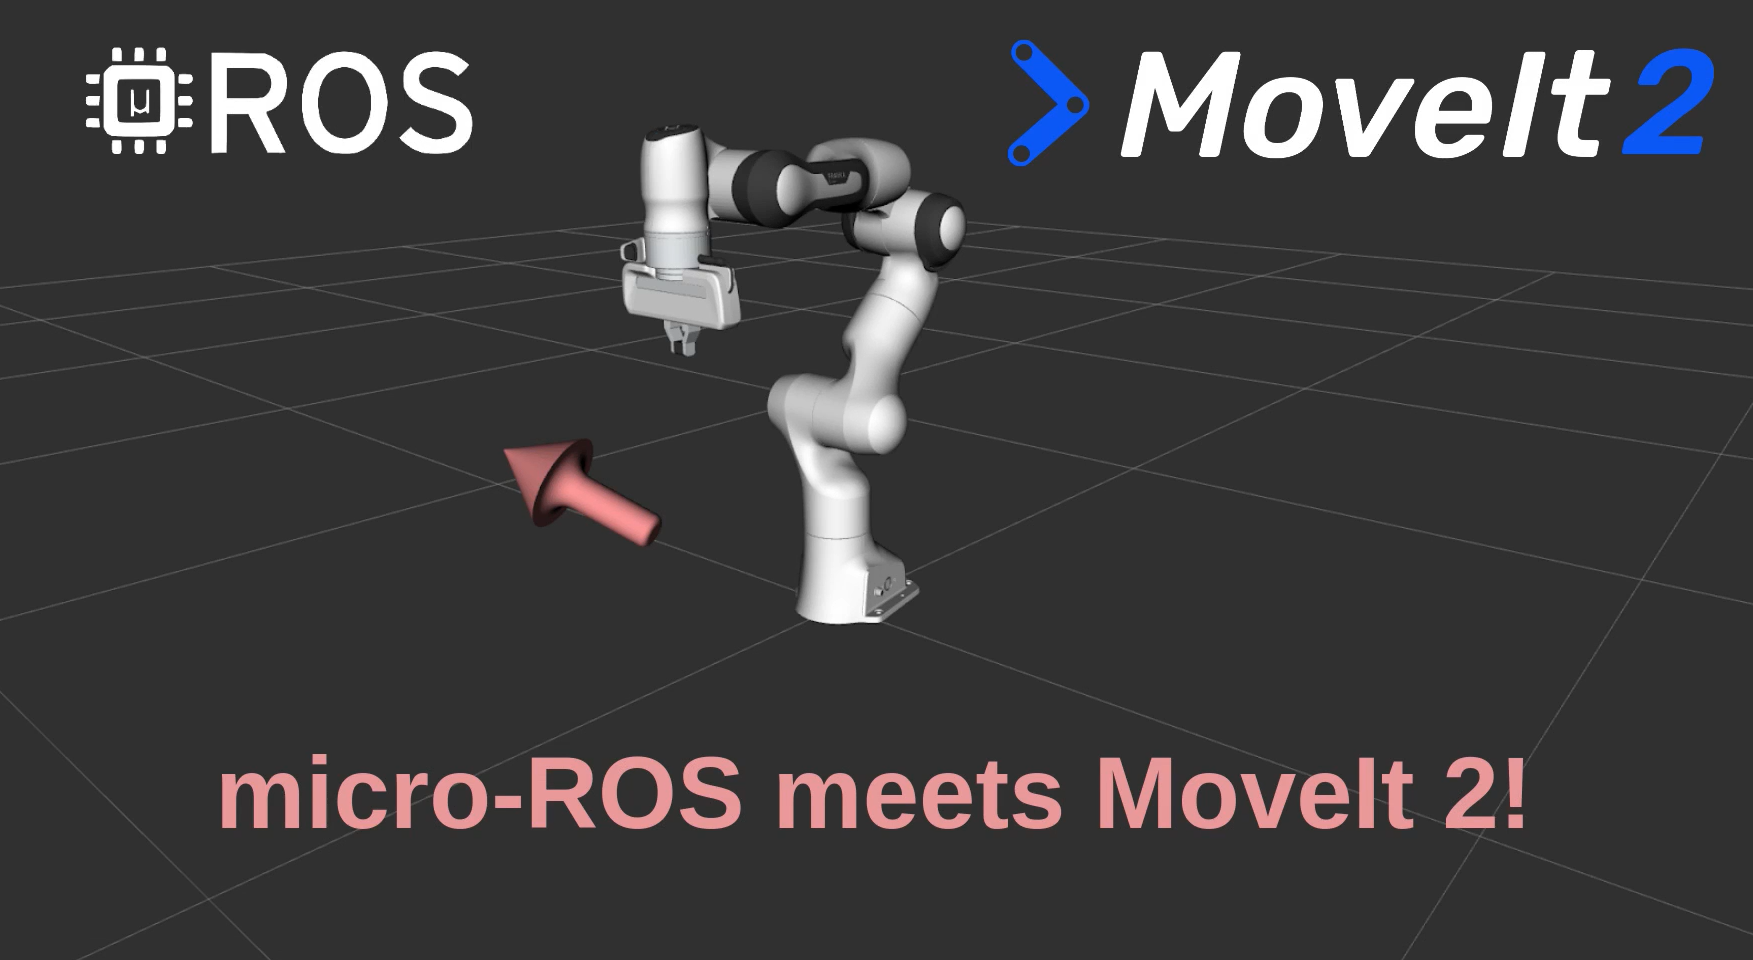 micro-ROS and MoveIt